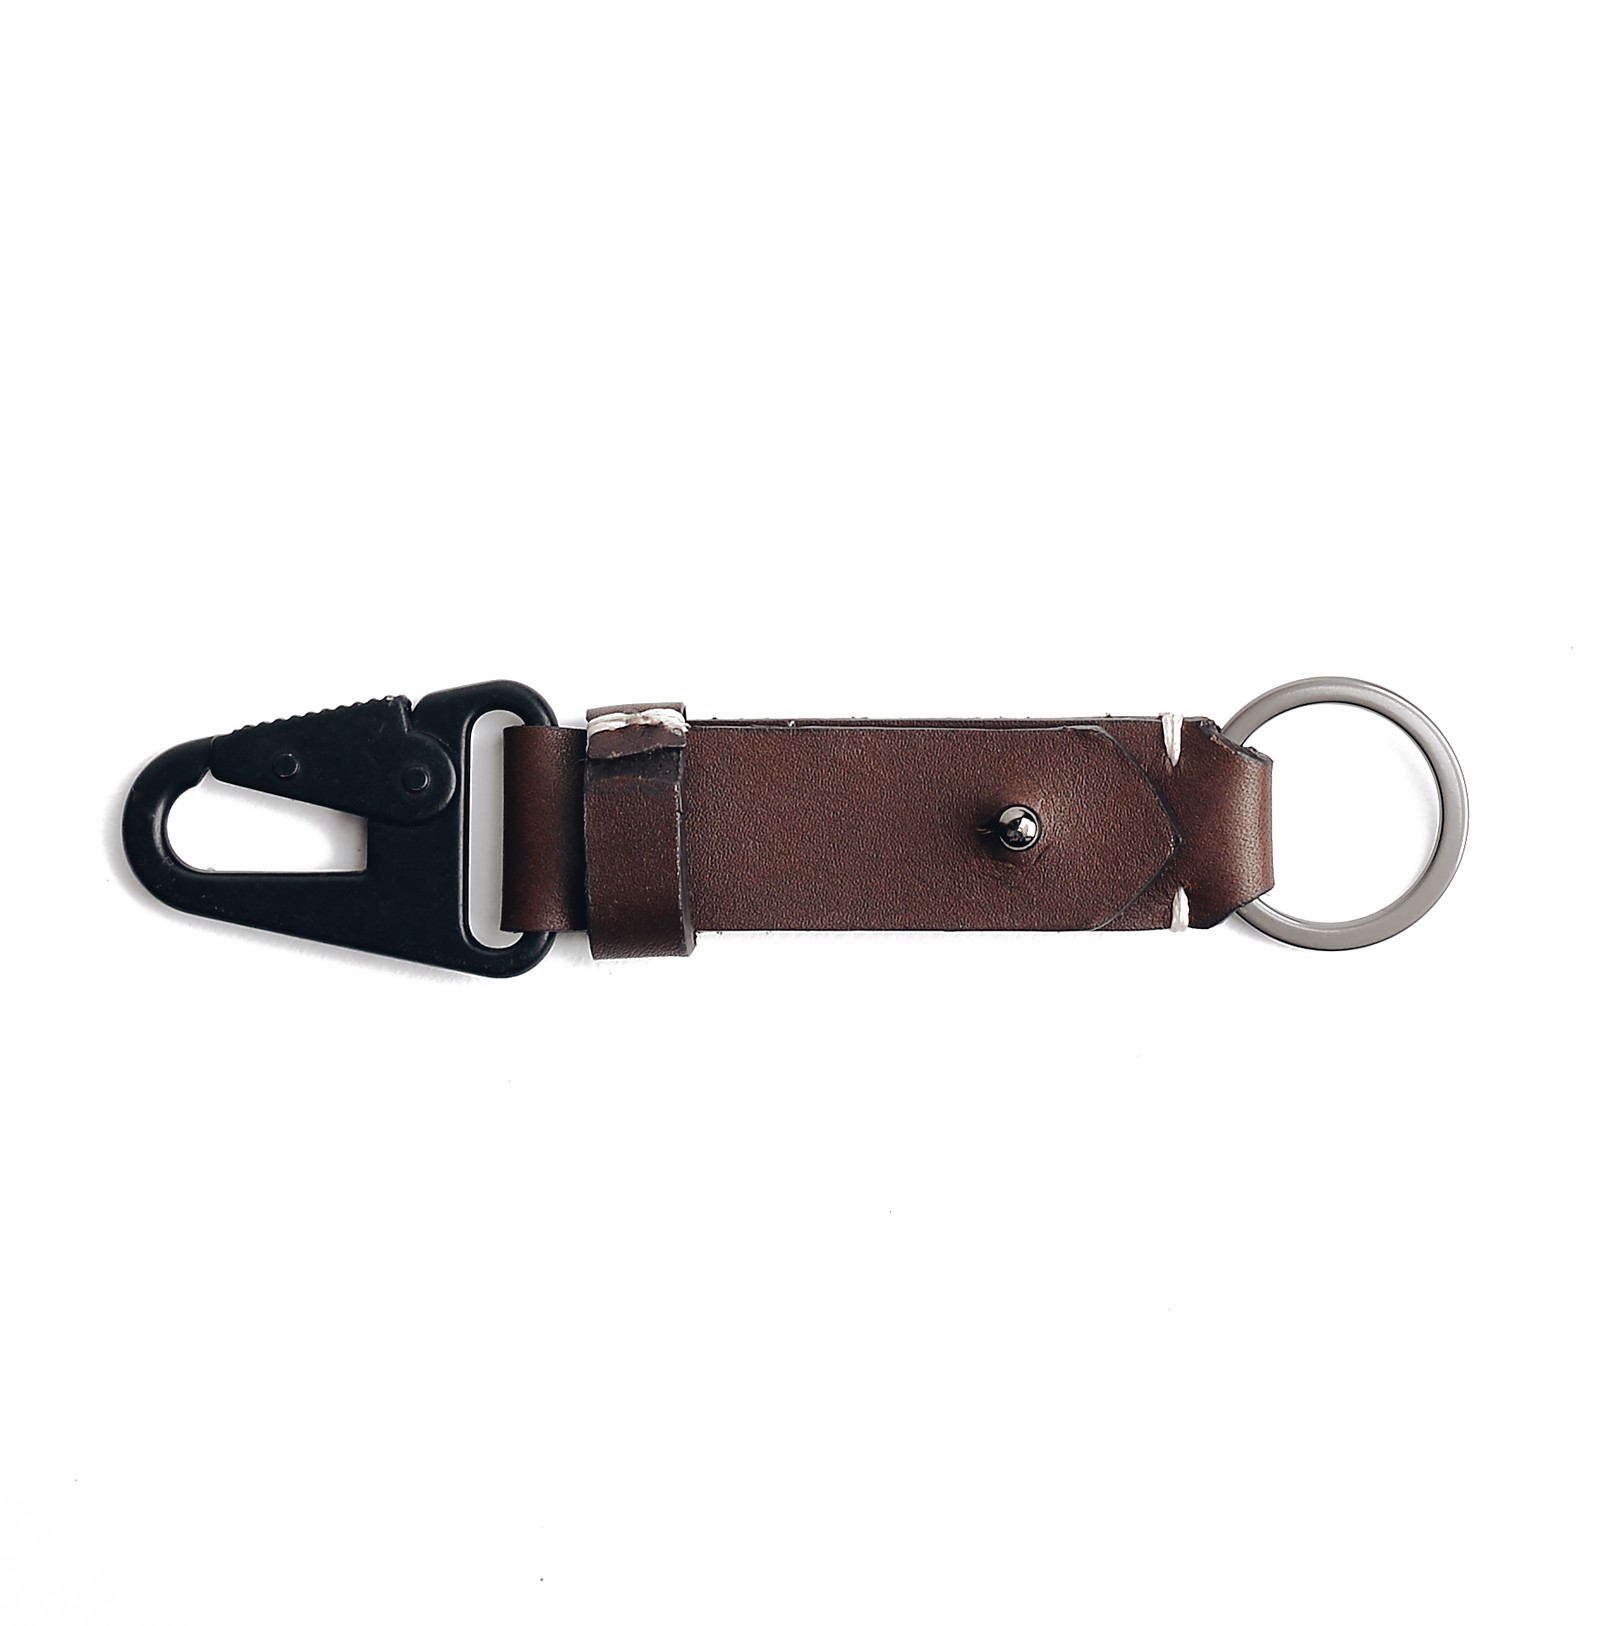 MIL KEYCHAIN M - BROWN